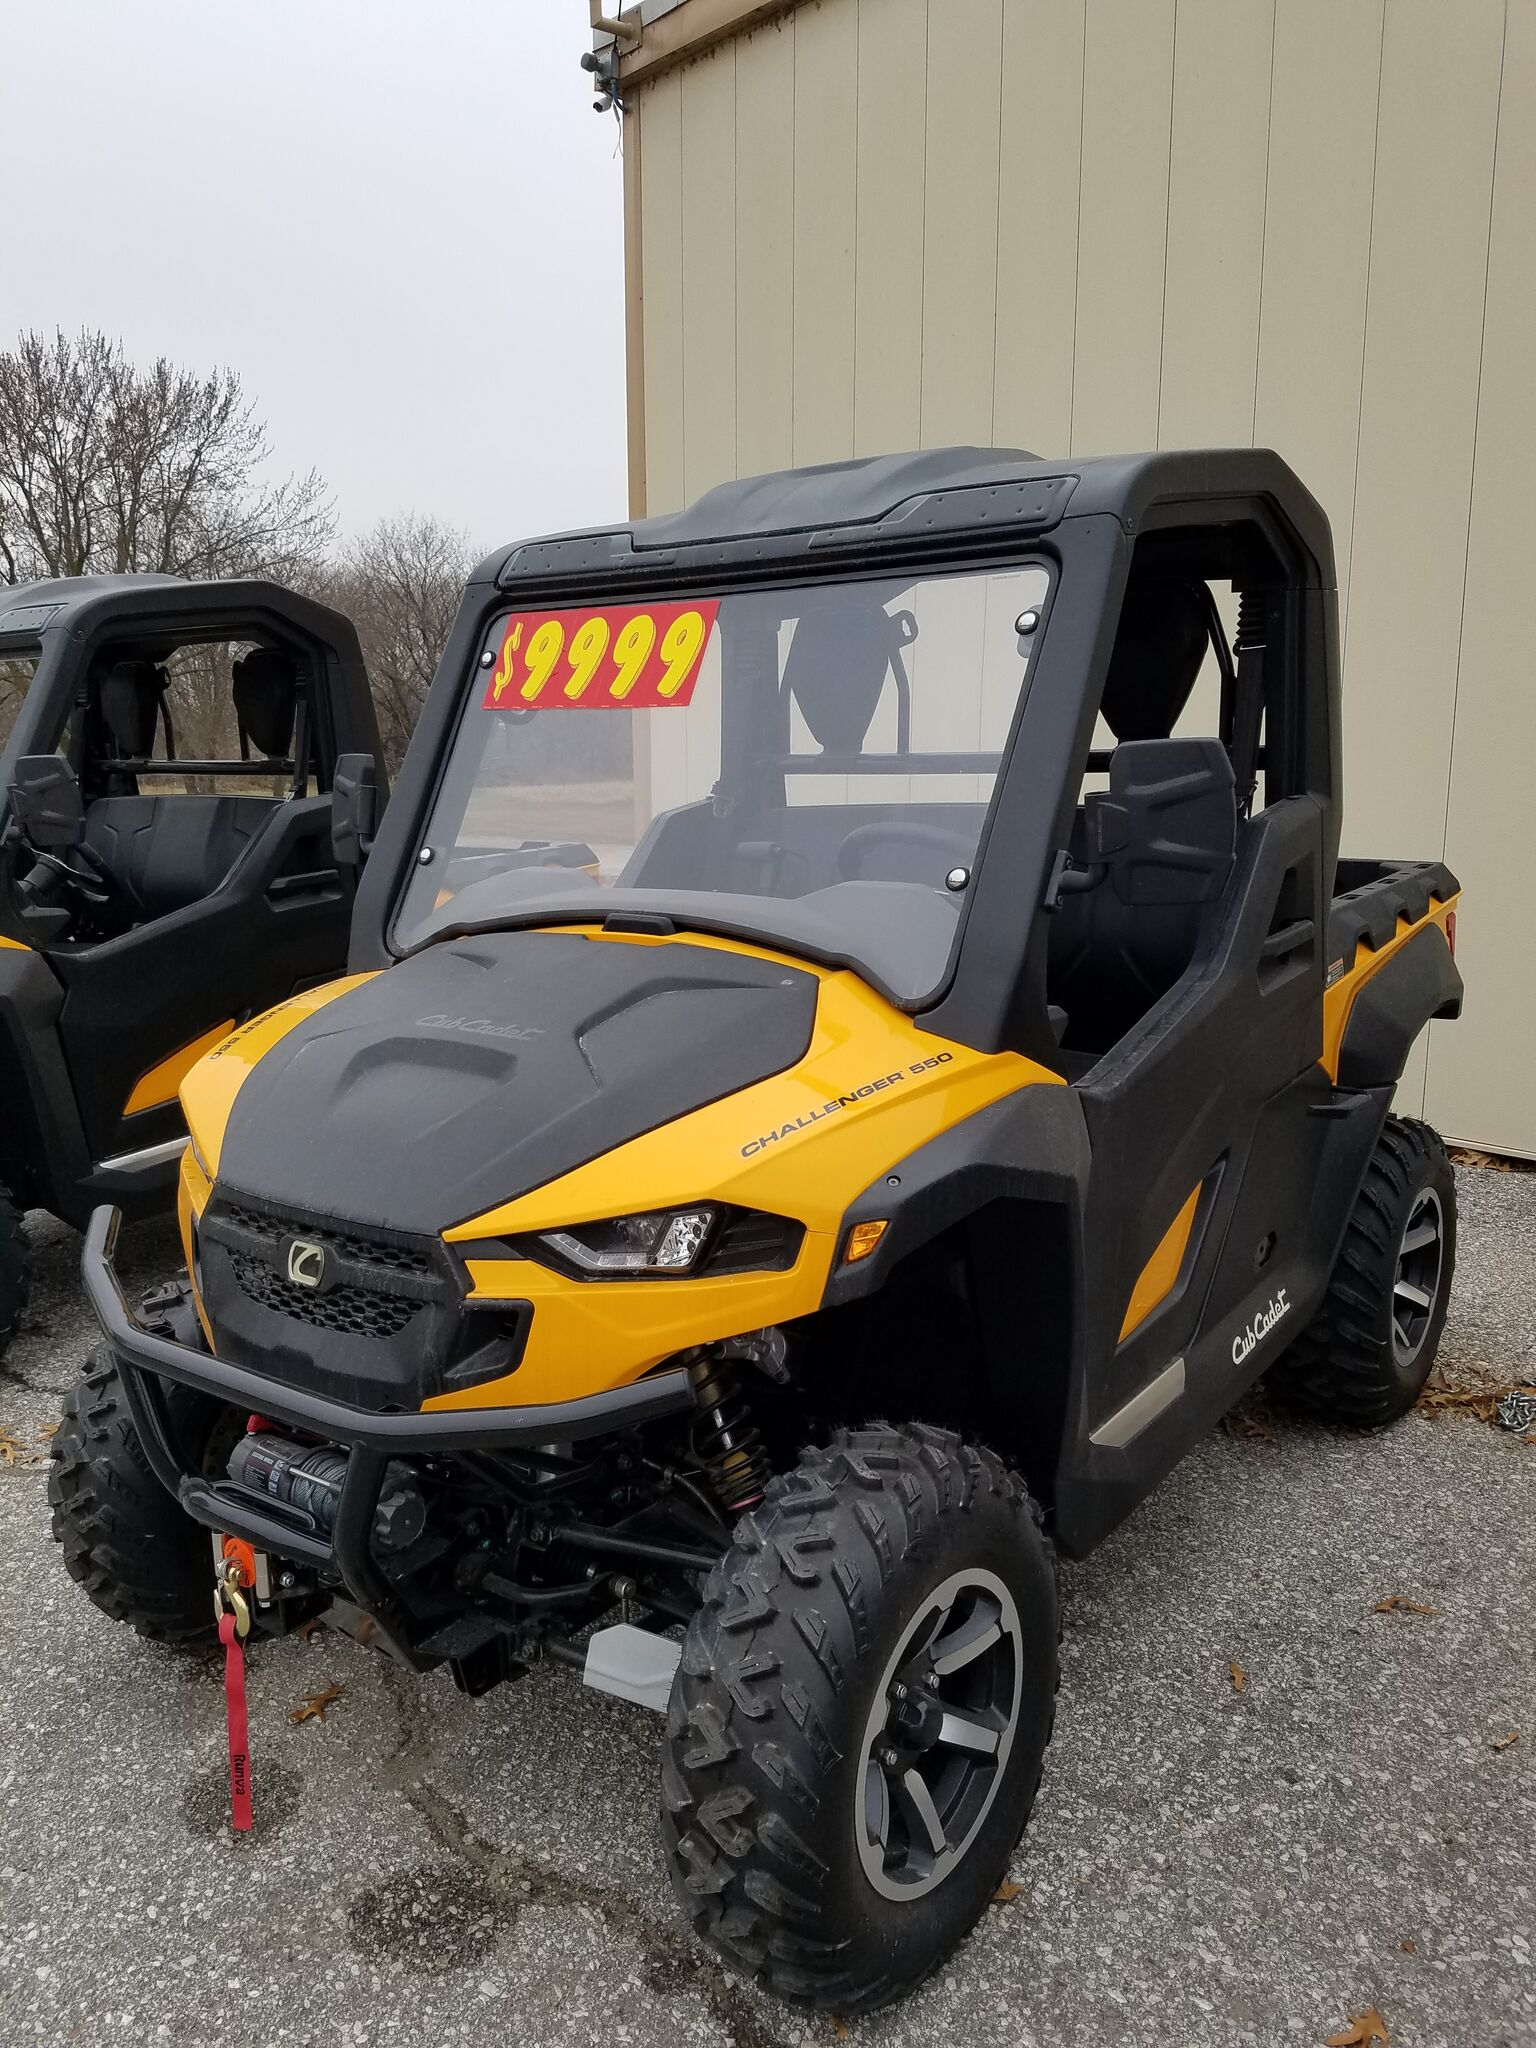 Cub Cadet Challenger 550 Utility Vehicle - Yellow